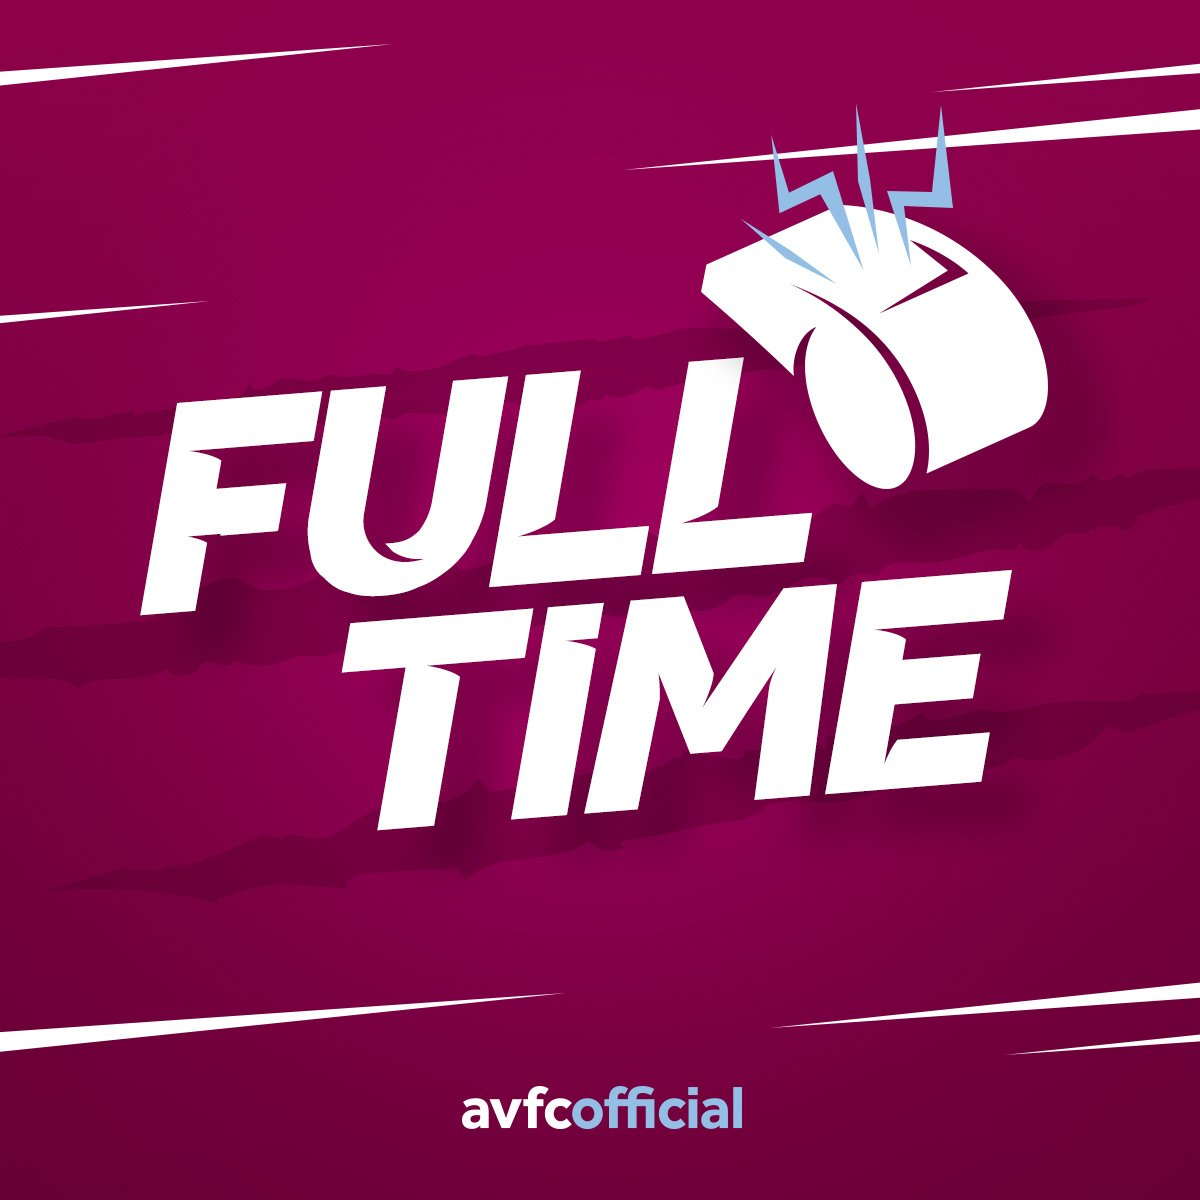 FT: Burton 0-4 #AVFC A comprehensive win in the end for Steve Bruces side after a very impressive second half performance. Fancy watching it all again? 👉 bit.ly/2uQYUfC #PartOfThePride #AVFC